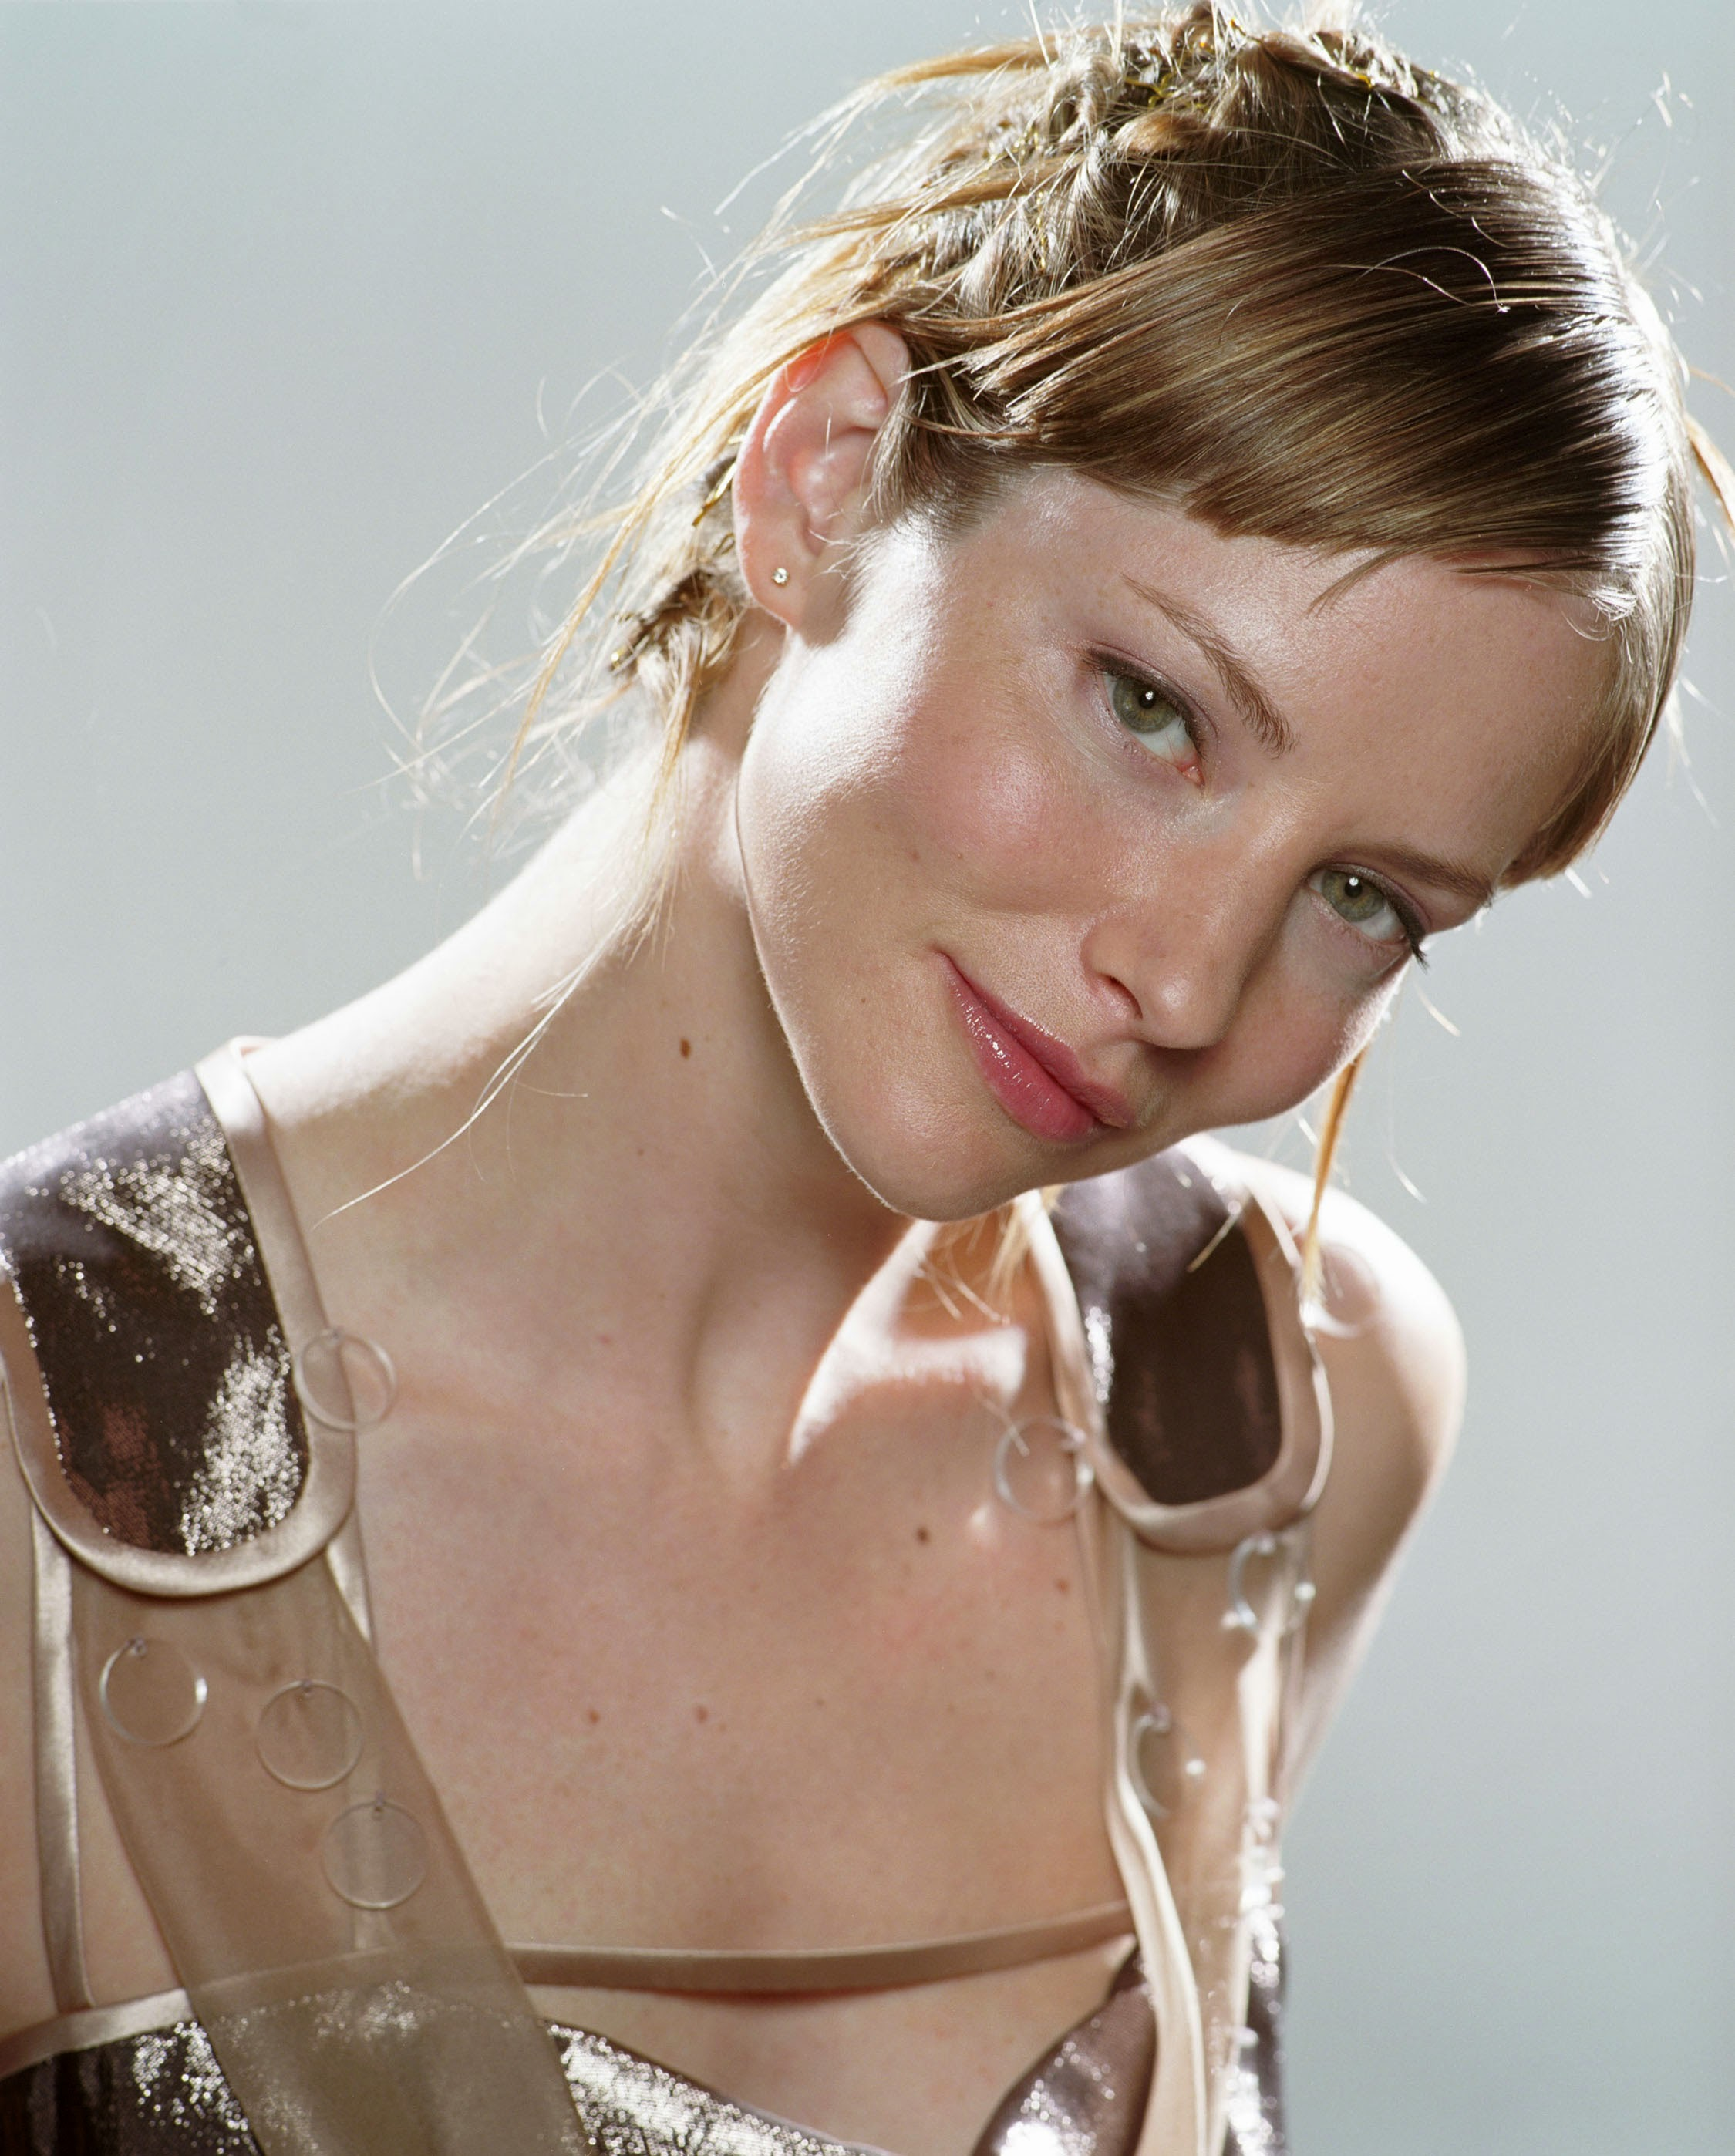 Were visited Sienna guillory fakes right! good